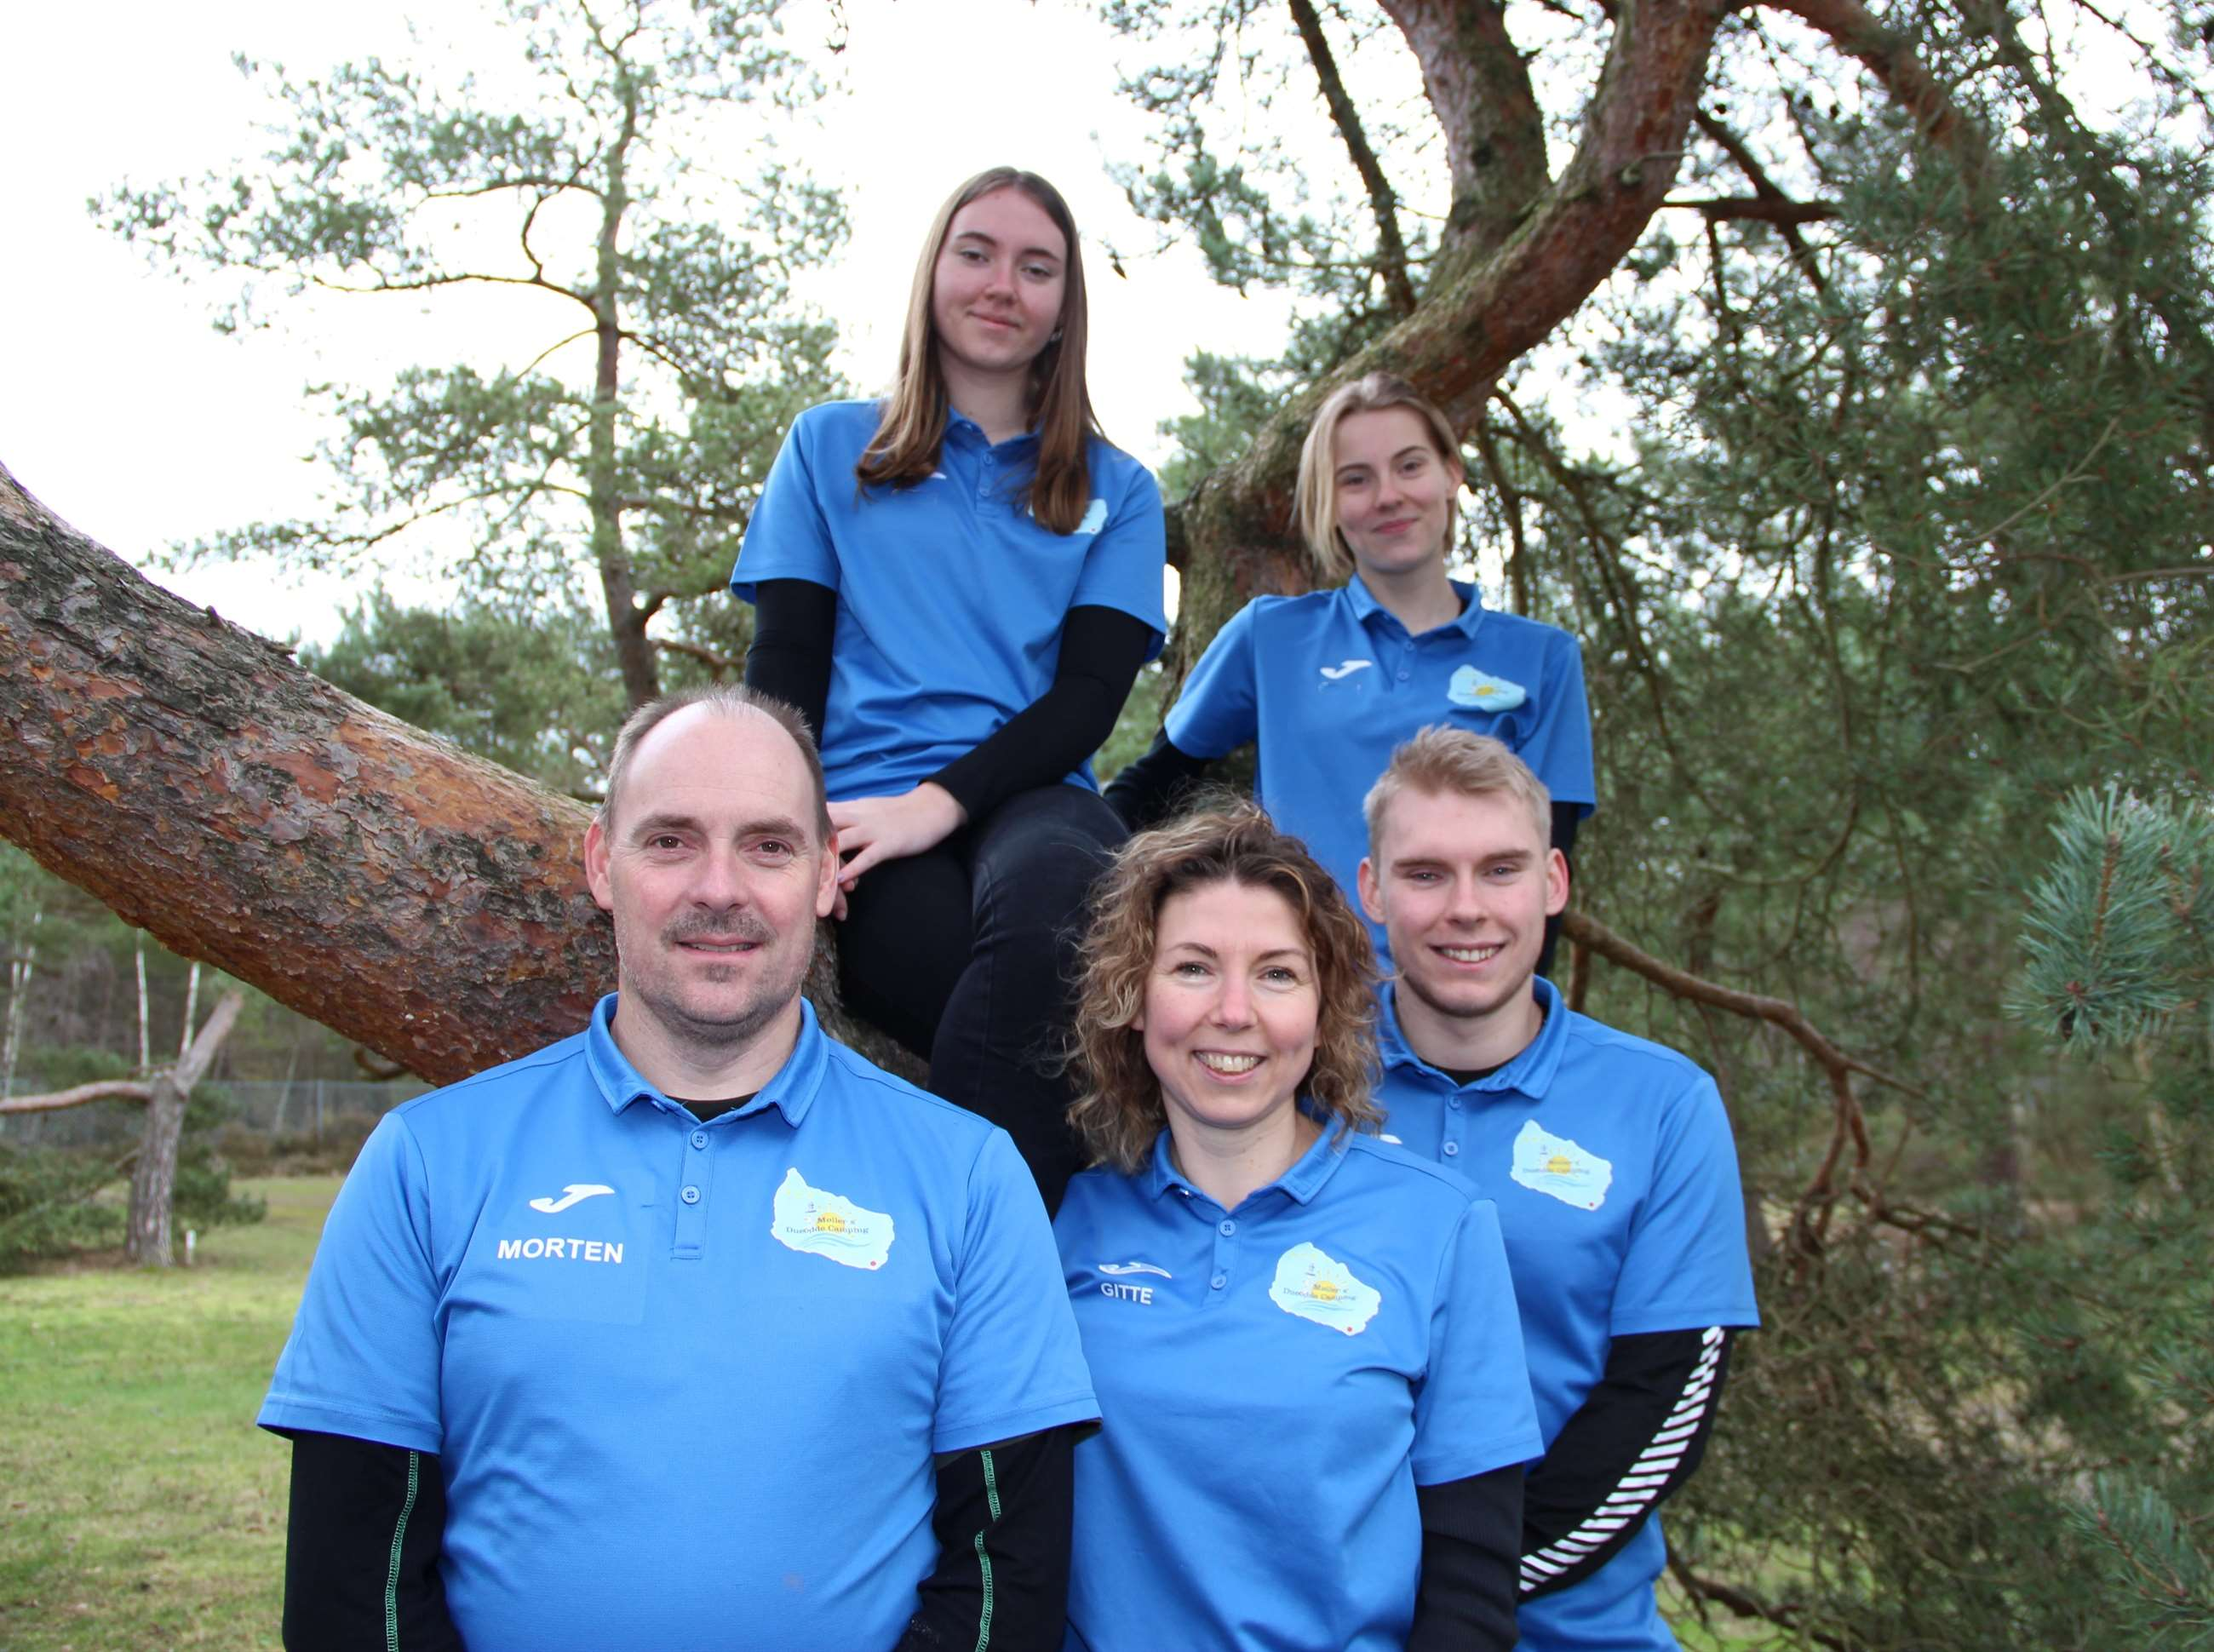 team pedersen mdc